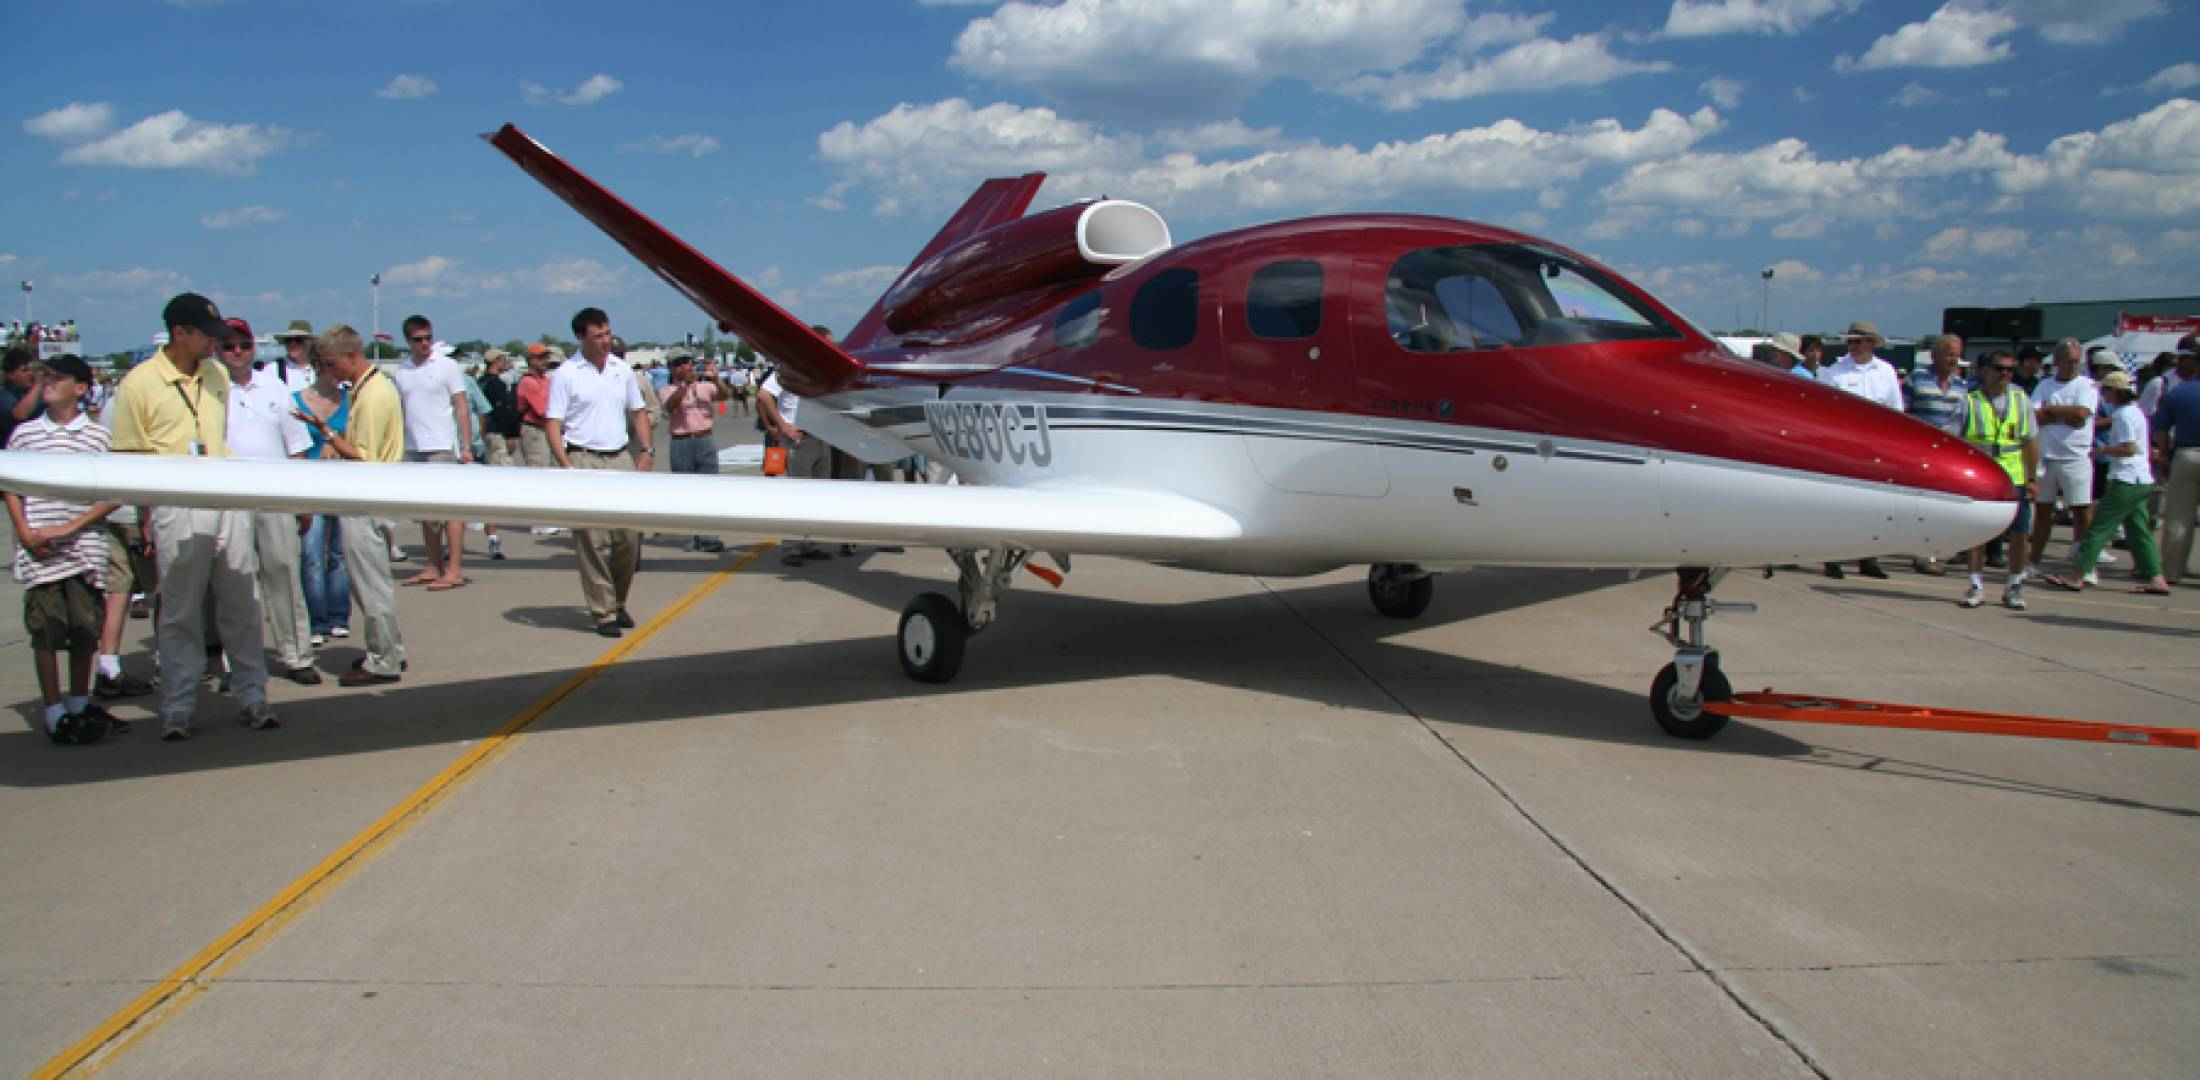 First Conforming Cirrus Vision Jet To Fly in 2014